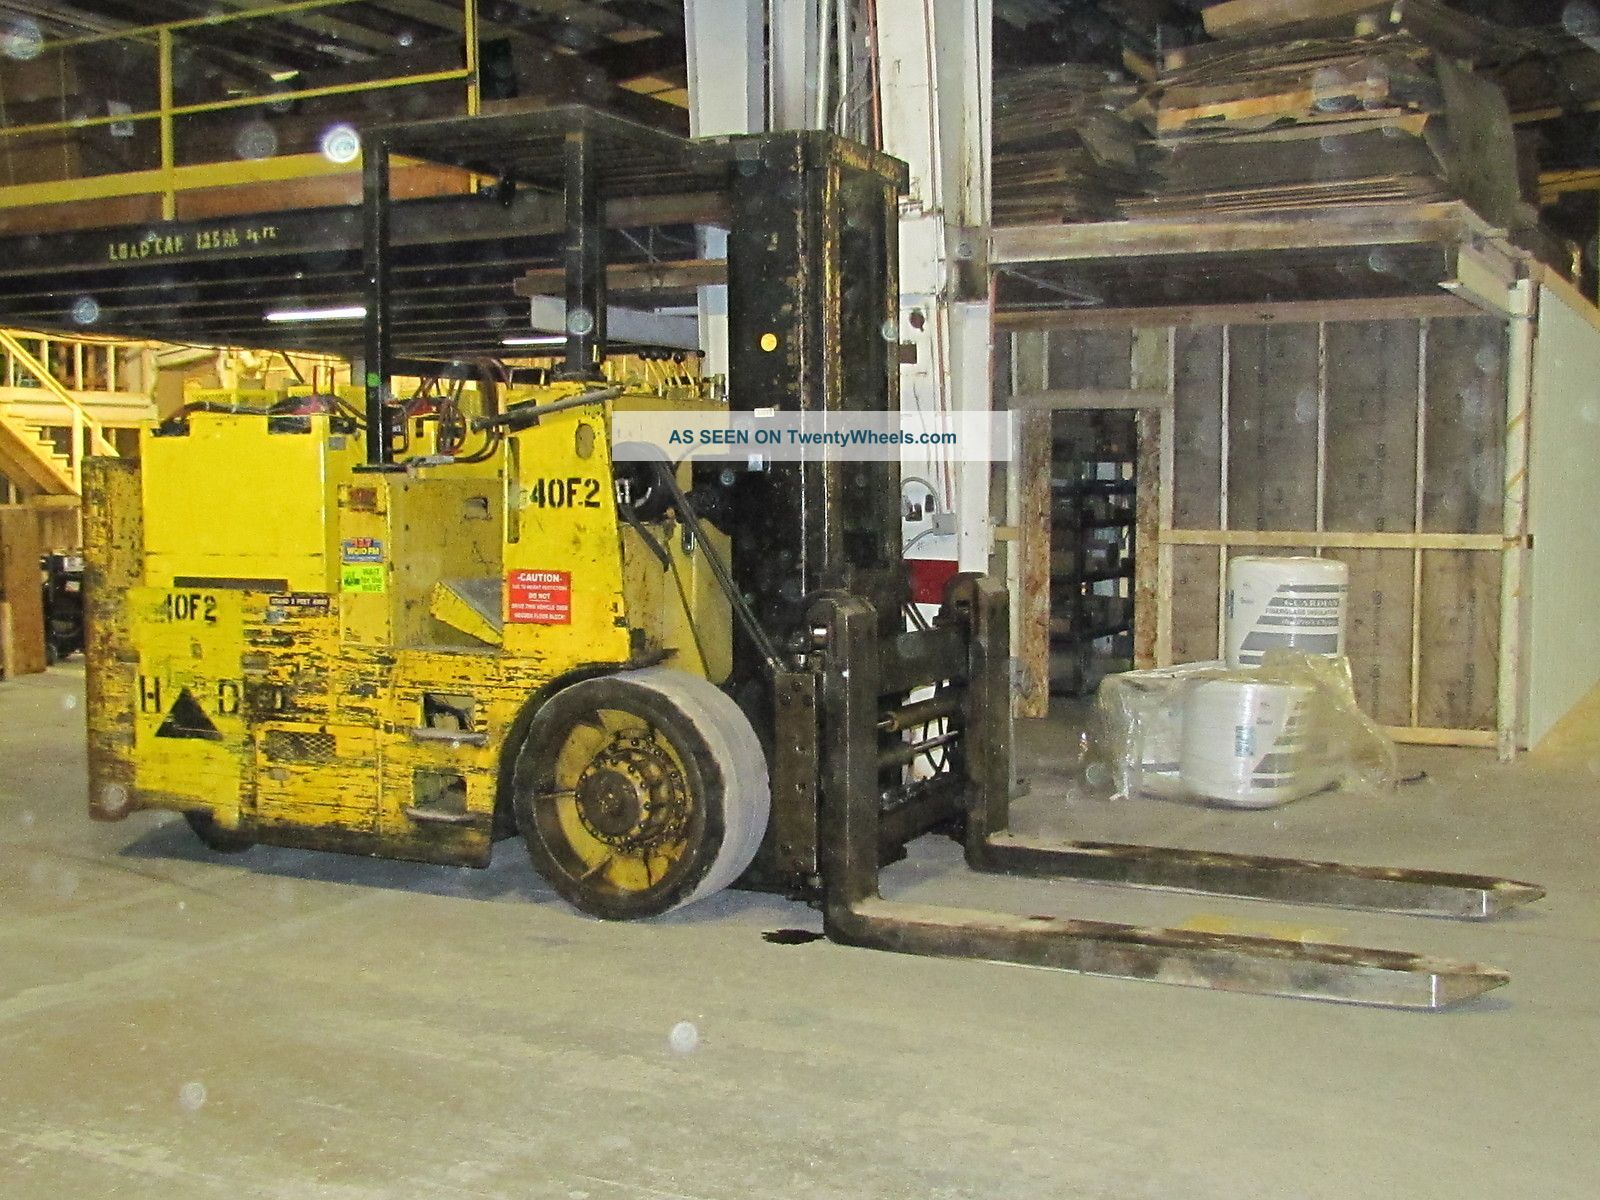 Elwell - Parker 40000 Lb Capacity Autolift Electric Forklift Coil Handler Forklifts & Other Lifts photo